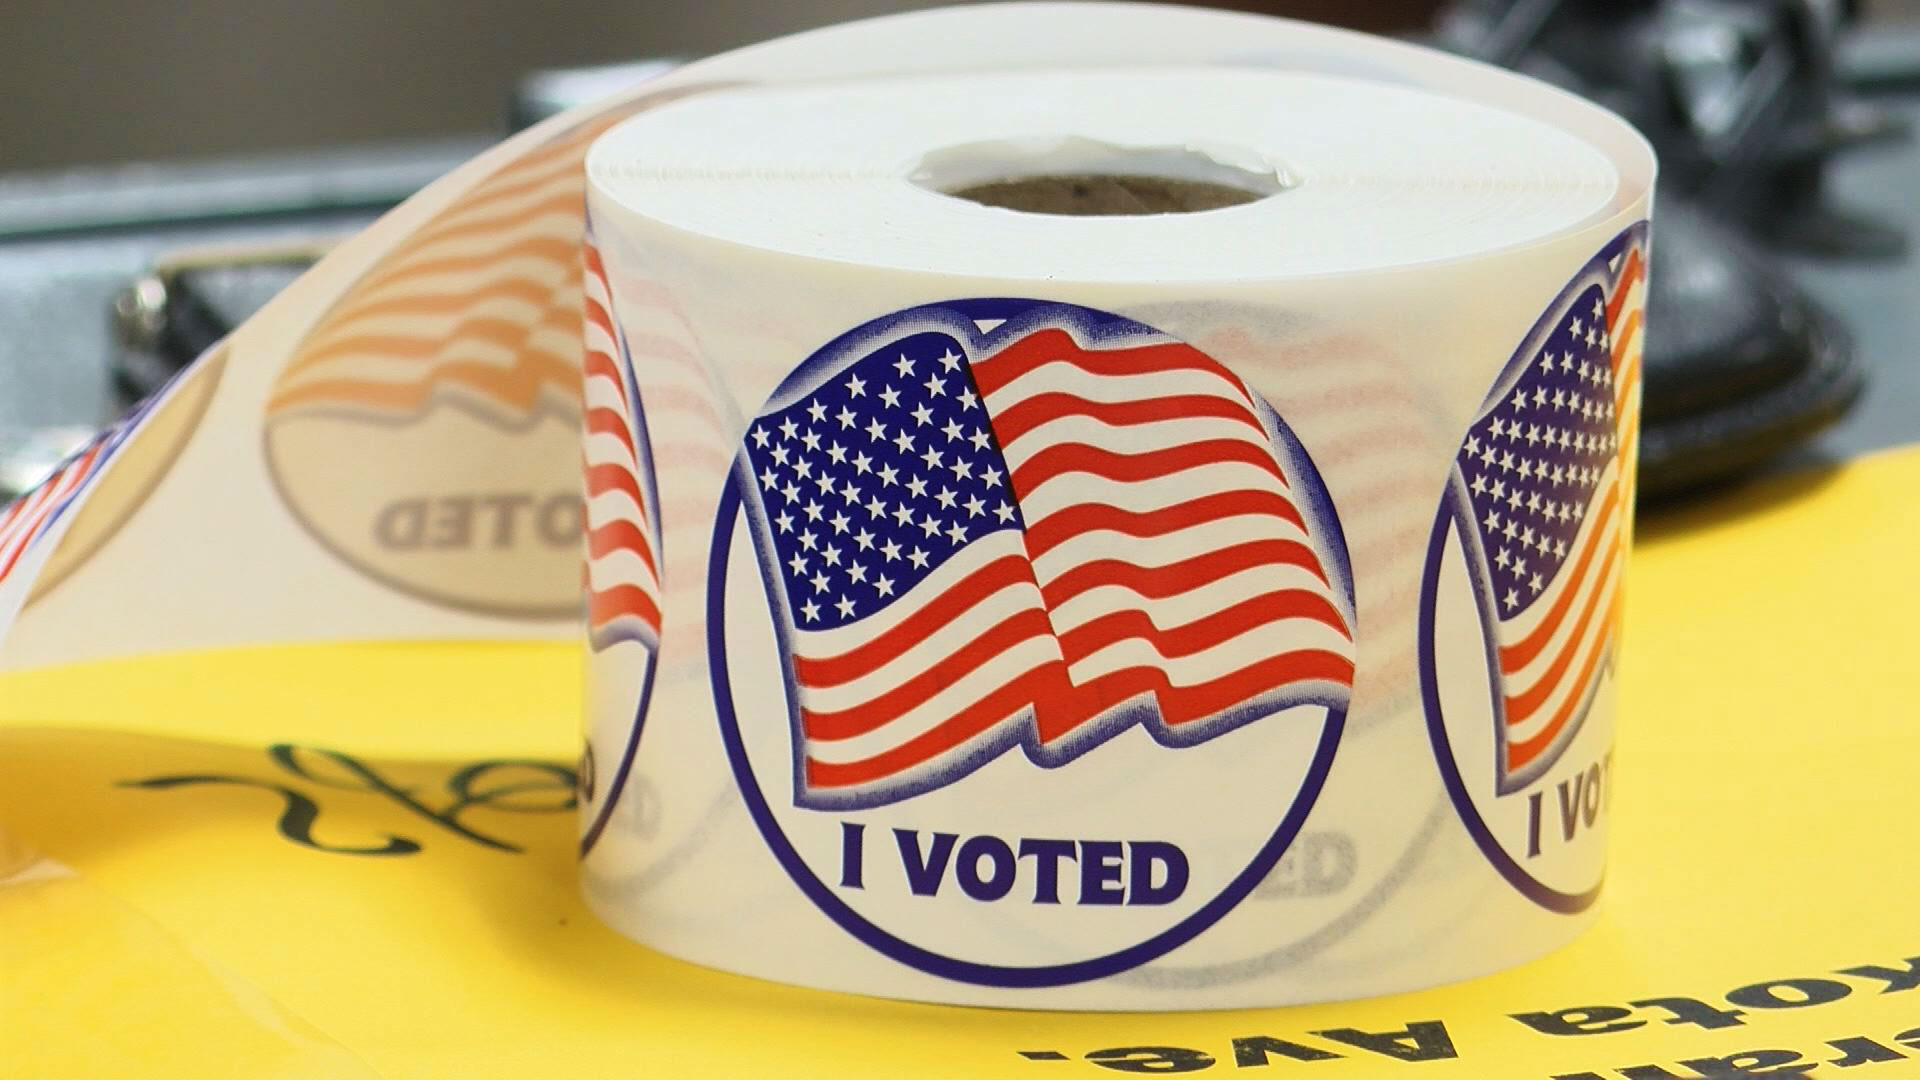 KELO voted stickers election vote